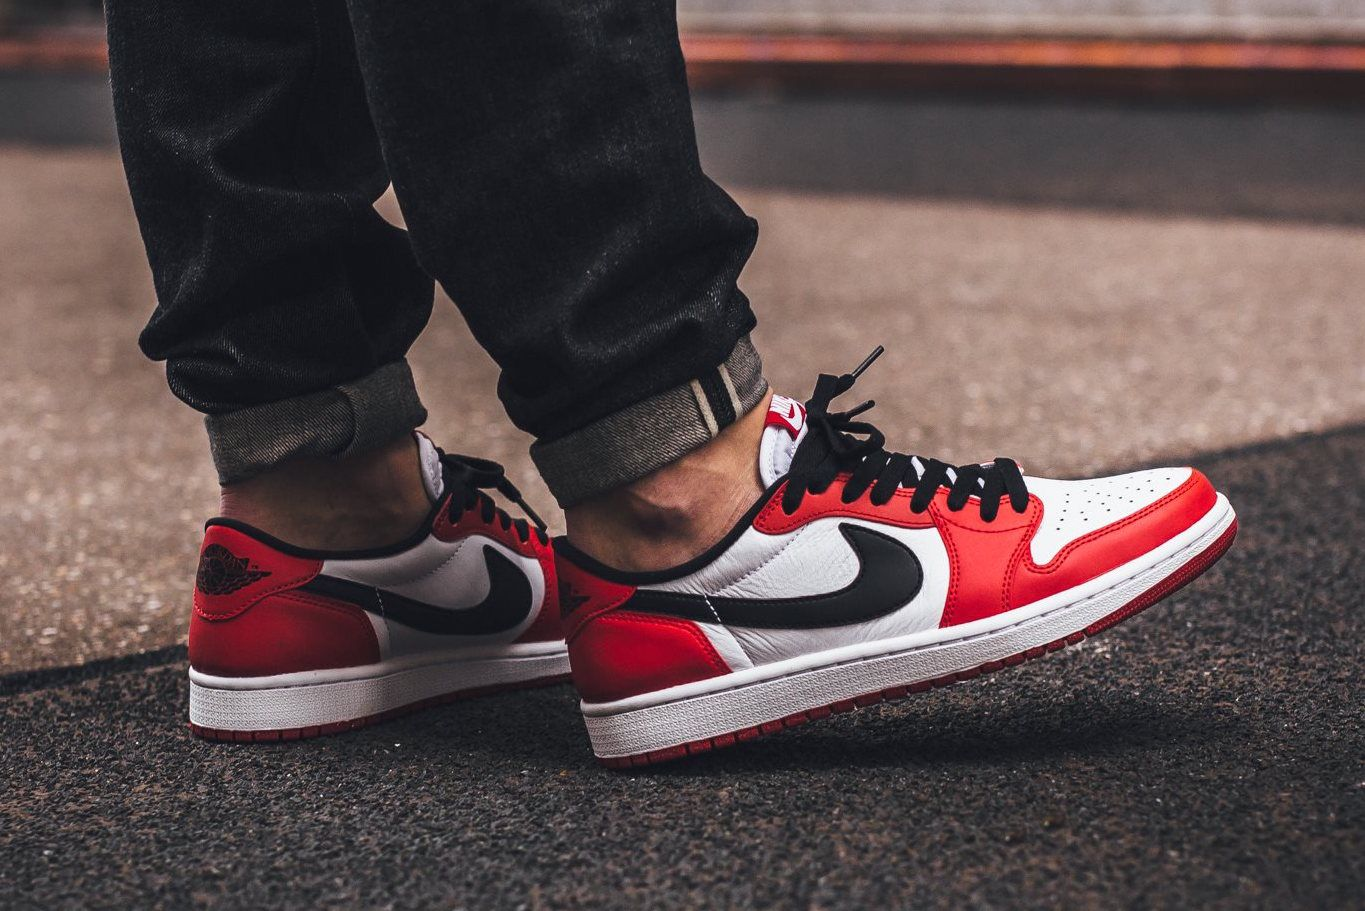 Otoño ocio Tomar represalias  On-Feet Look At The Air Jordan 1 Low OG Chicago • KicksOnFire.com | Air  jordans, Air jordans retro, Sneakers fashion